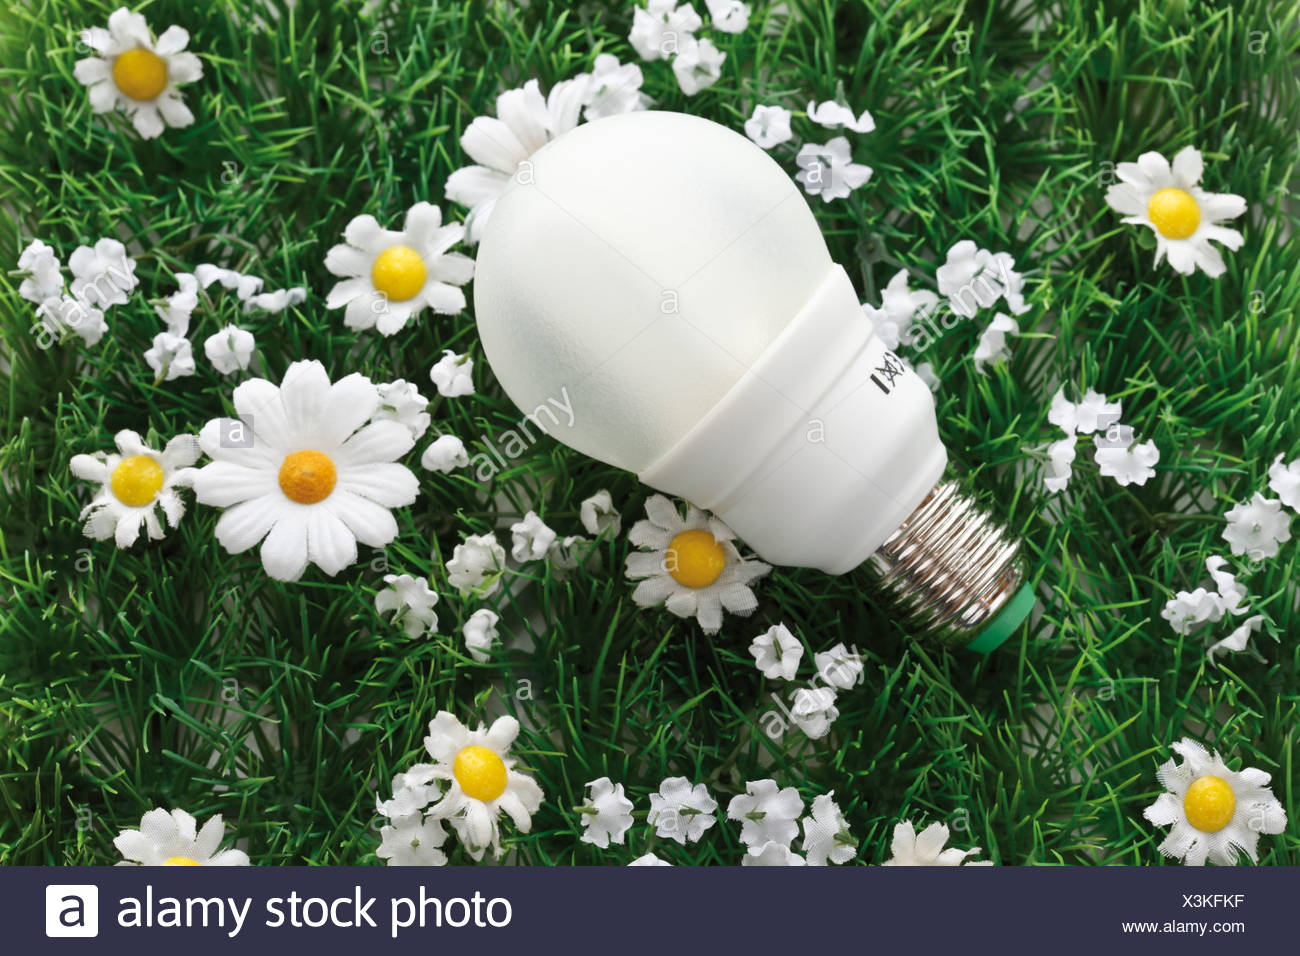 Energy saving lightbulb on synthetic turf, elevated view - Stock Image